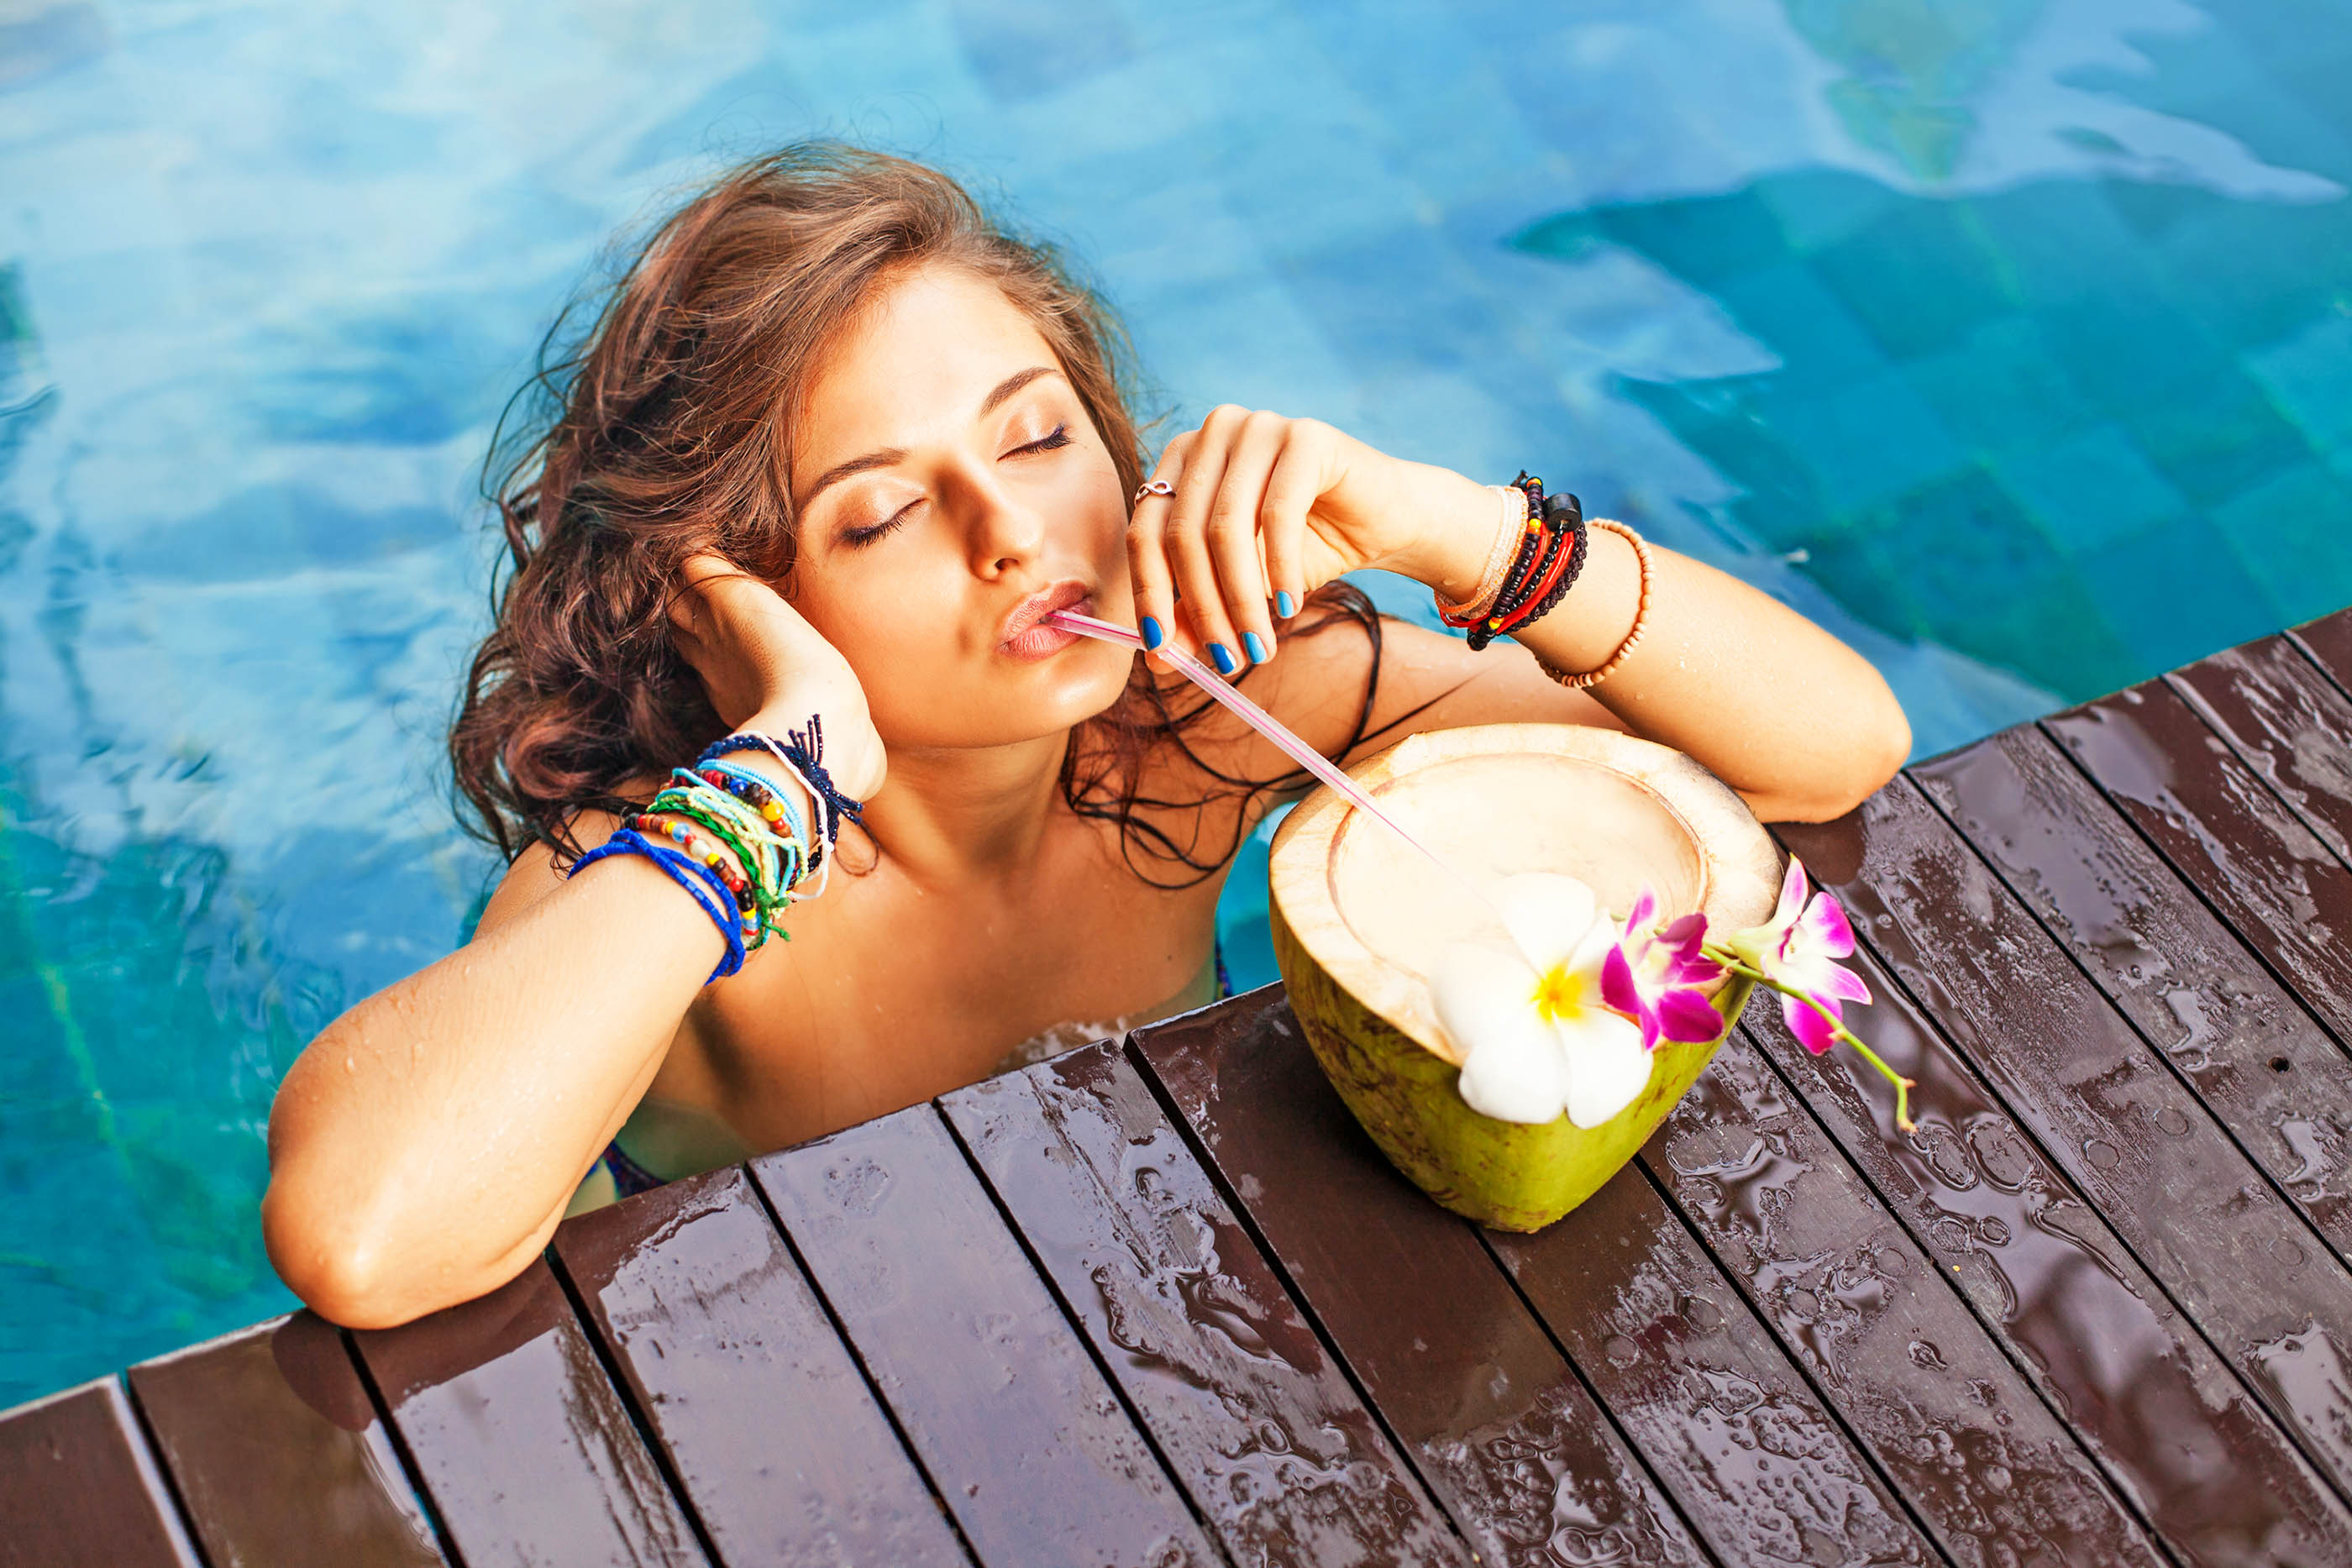 Beautiful girl standing on an edge of swimming pool and drinking coconut cocktail